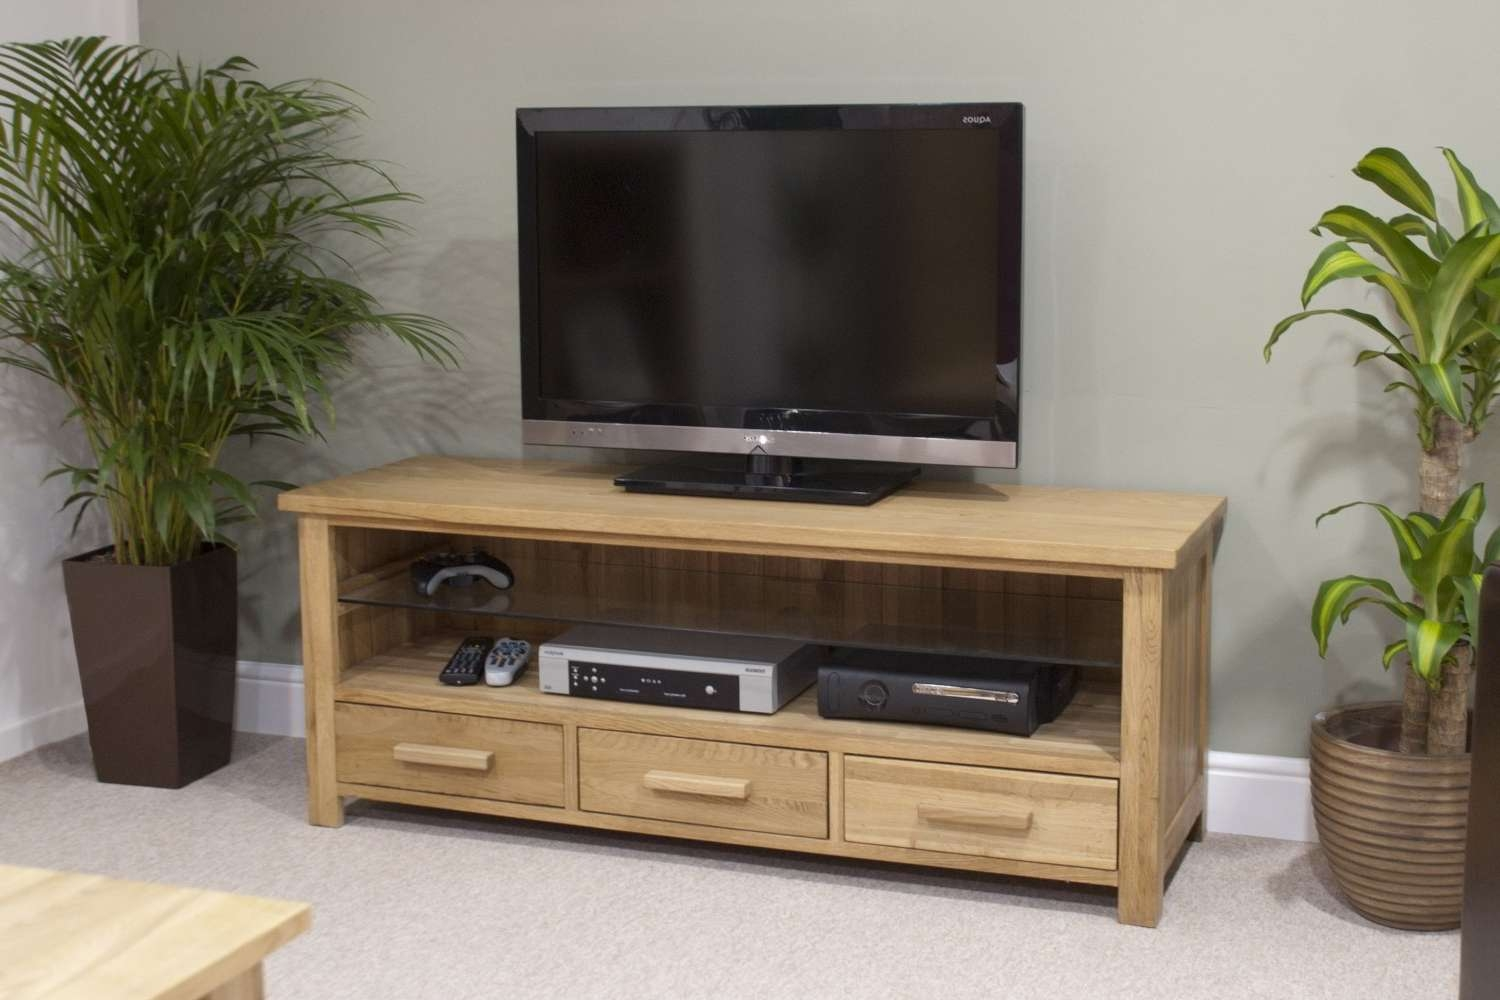 Eton Solid Oak Living Room Furniture Widescreen Tv Cabinet Stand In Widescreen Tv Cabinets (View 8 of 20)